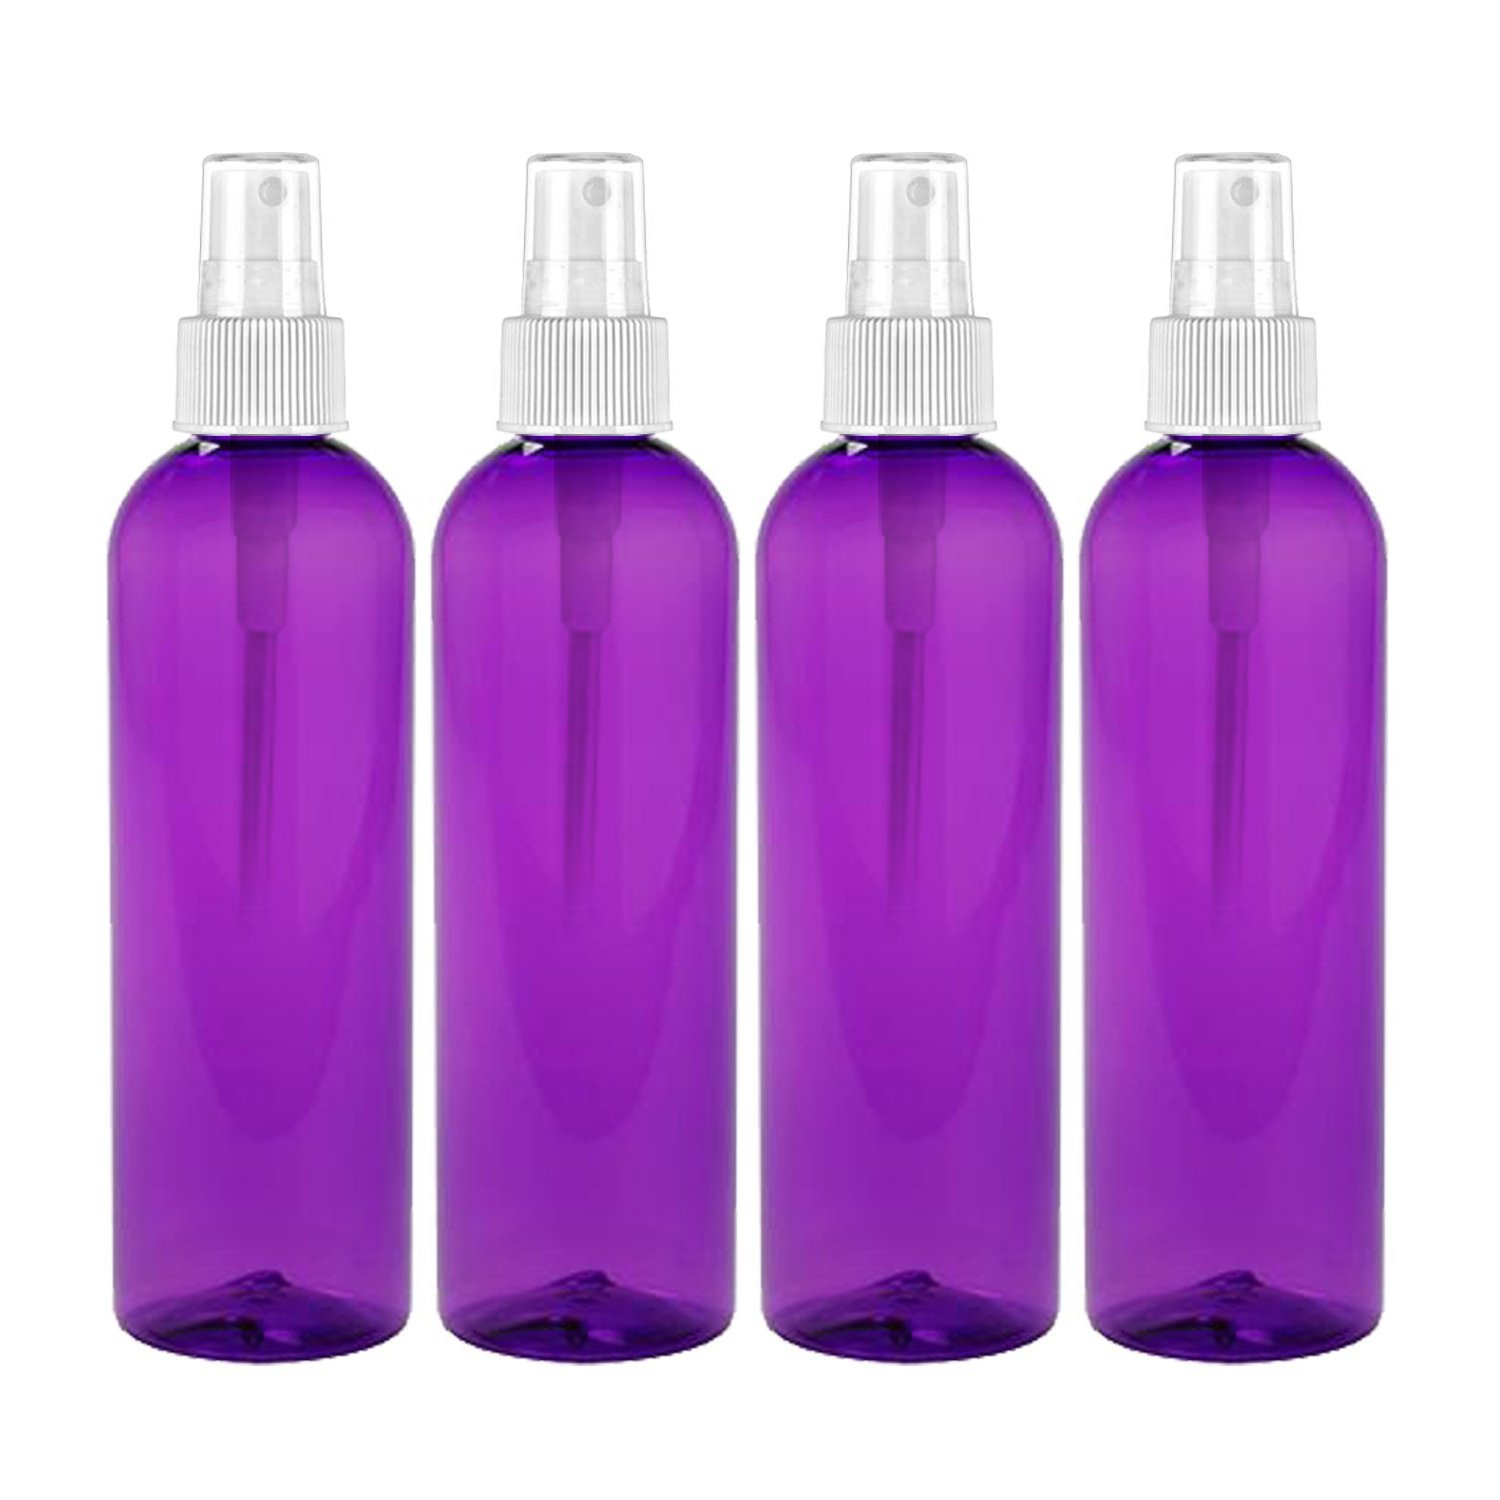 MoYo Natural Labs 4 oz Spray Bottles Fine Mist Empty Travel Containers, BPA Free PET Plastic for Essential Oils and Liquids/Cosmetics (Neck 20-410) (Pack of 4, Purple)